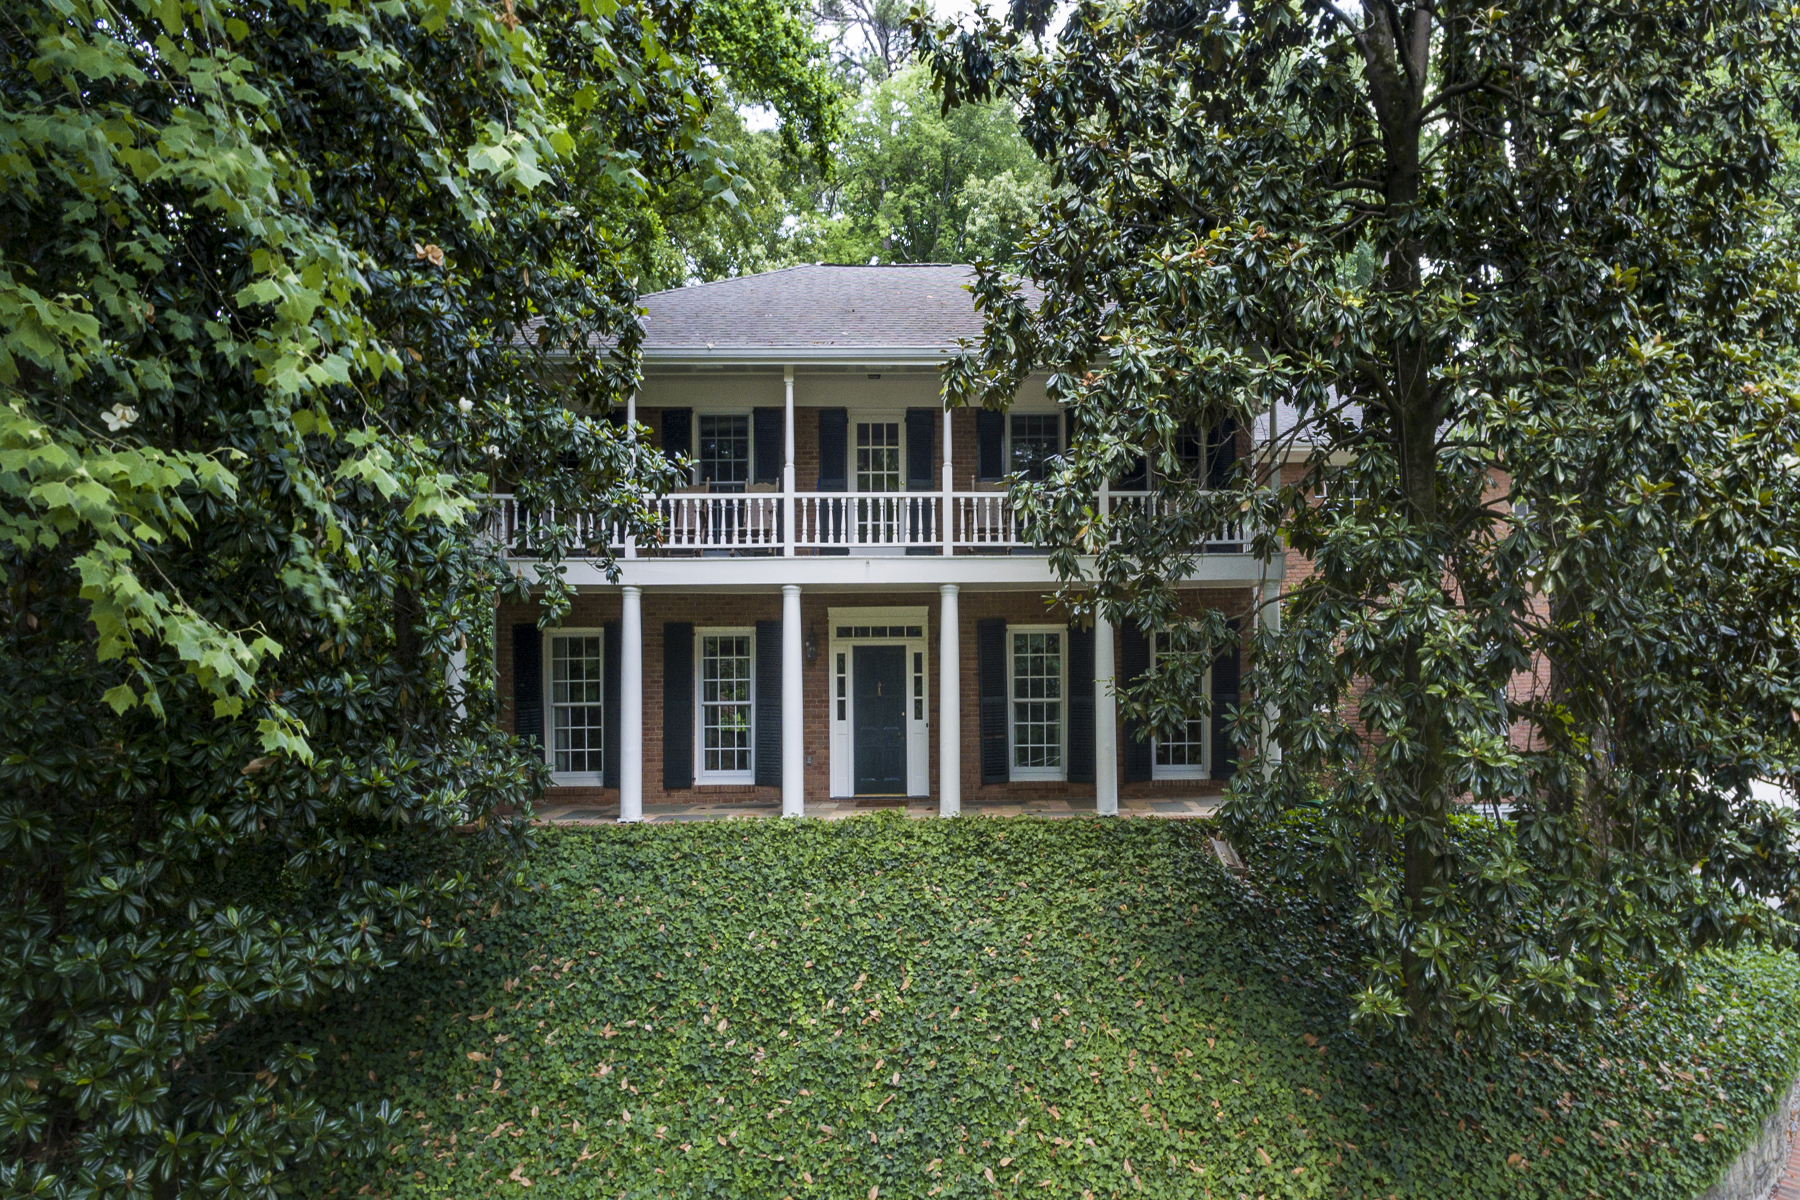 Частный односемейный дом для того Продажа на Charming Home On One Of Buckhead's Most Sought After Quiet Streets 3100 E Pine Valley Road NW Buckhead, Atlanta, Джорджия, 30305 Соединенные Штаты